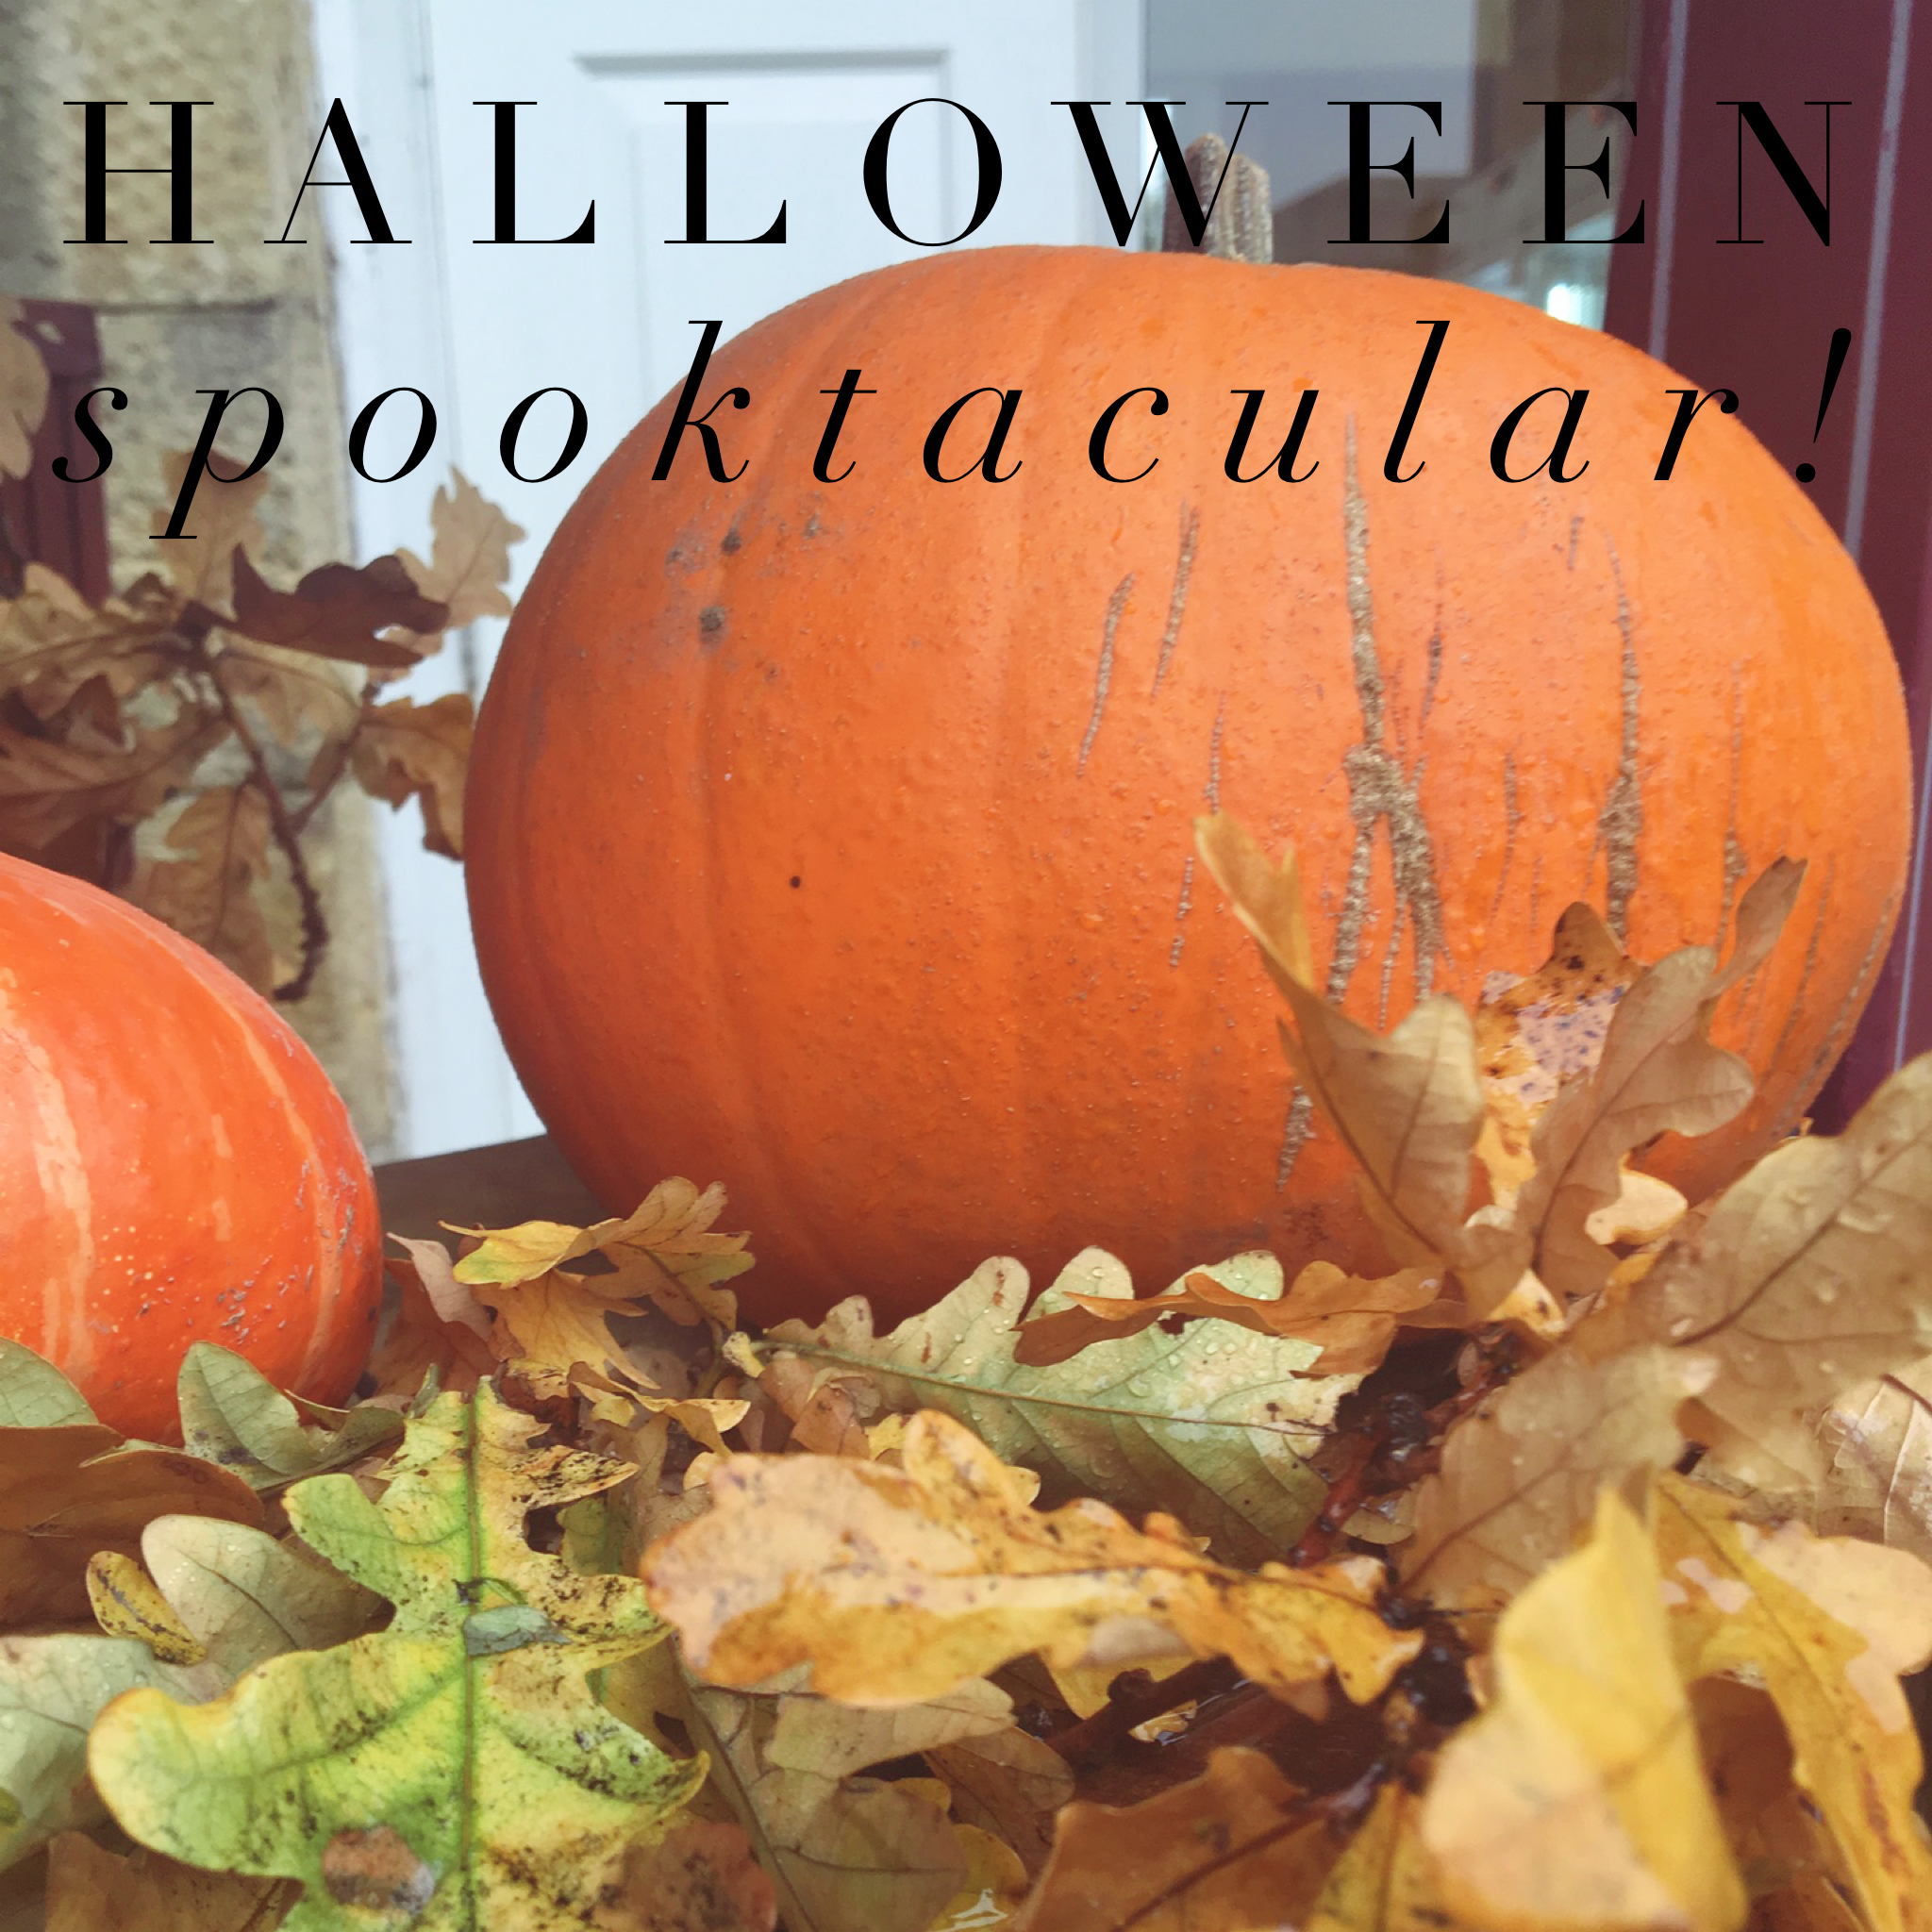 Toddler Spooktacular 2-4 years